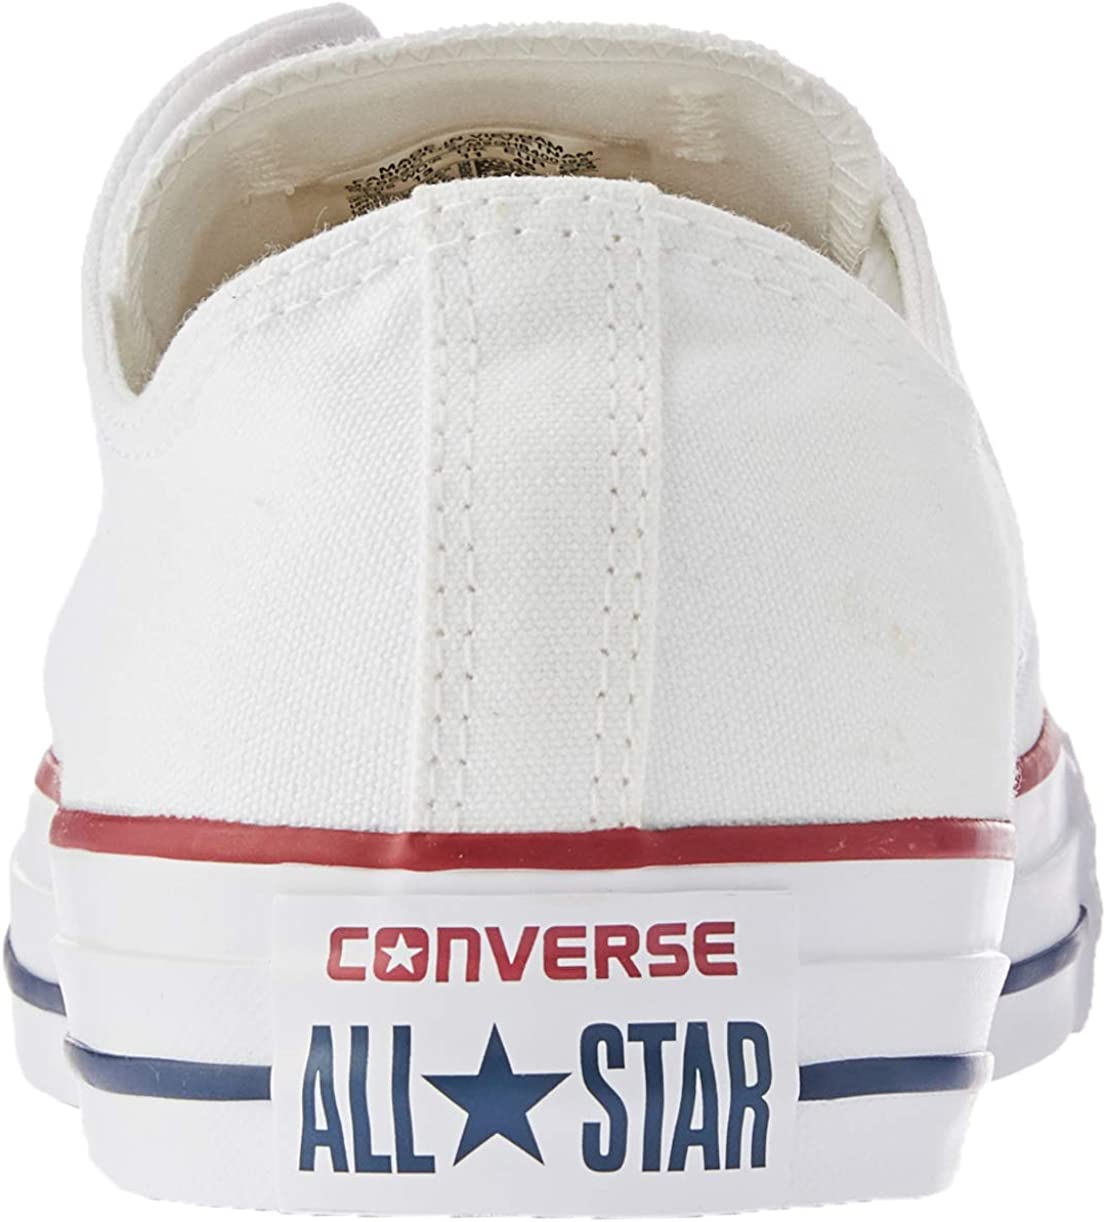 Converse Optical White 7652 Lo Top (10 (Men) / 12 (Women) US) Bianco Bianco Ottico U59XPP